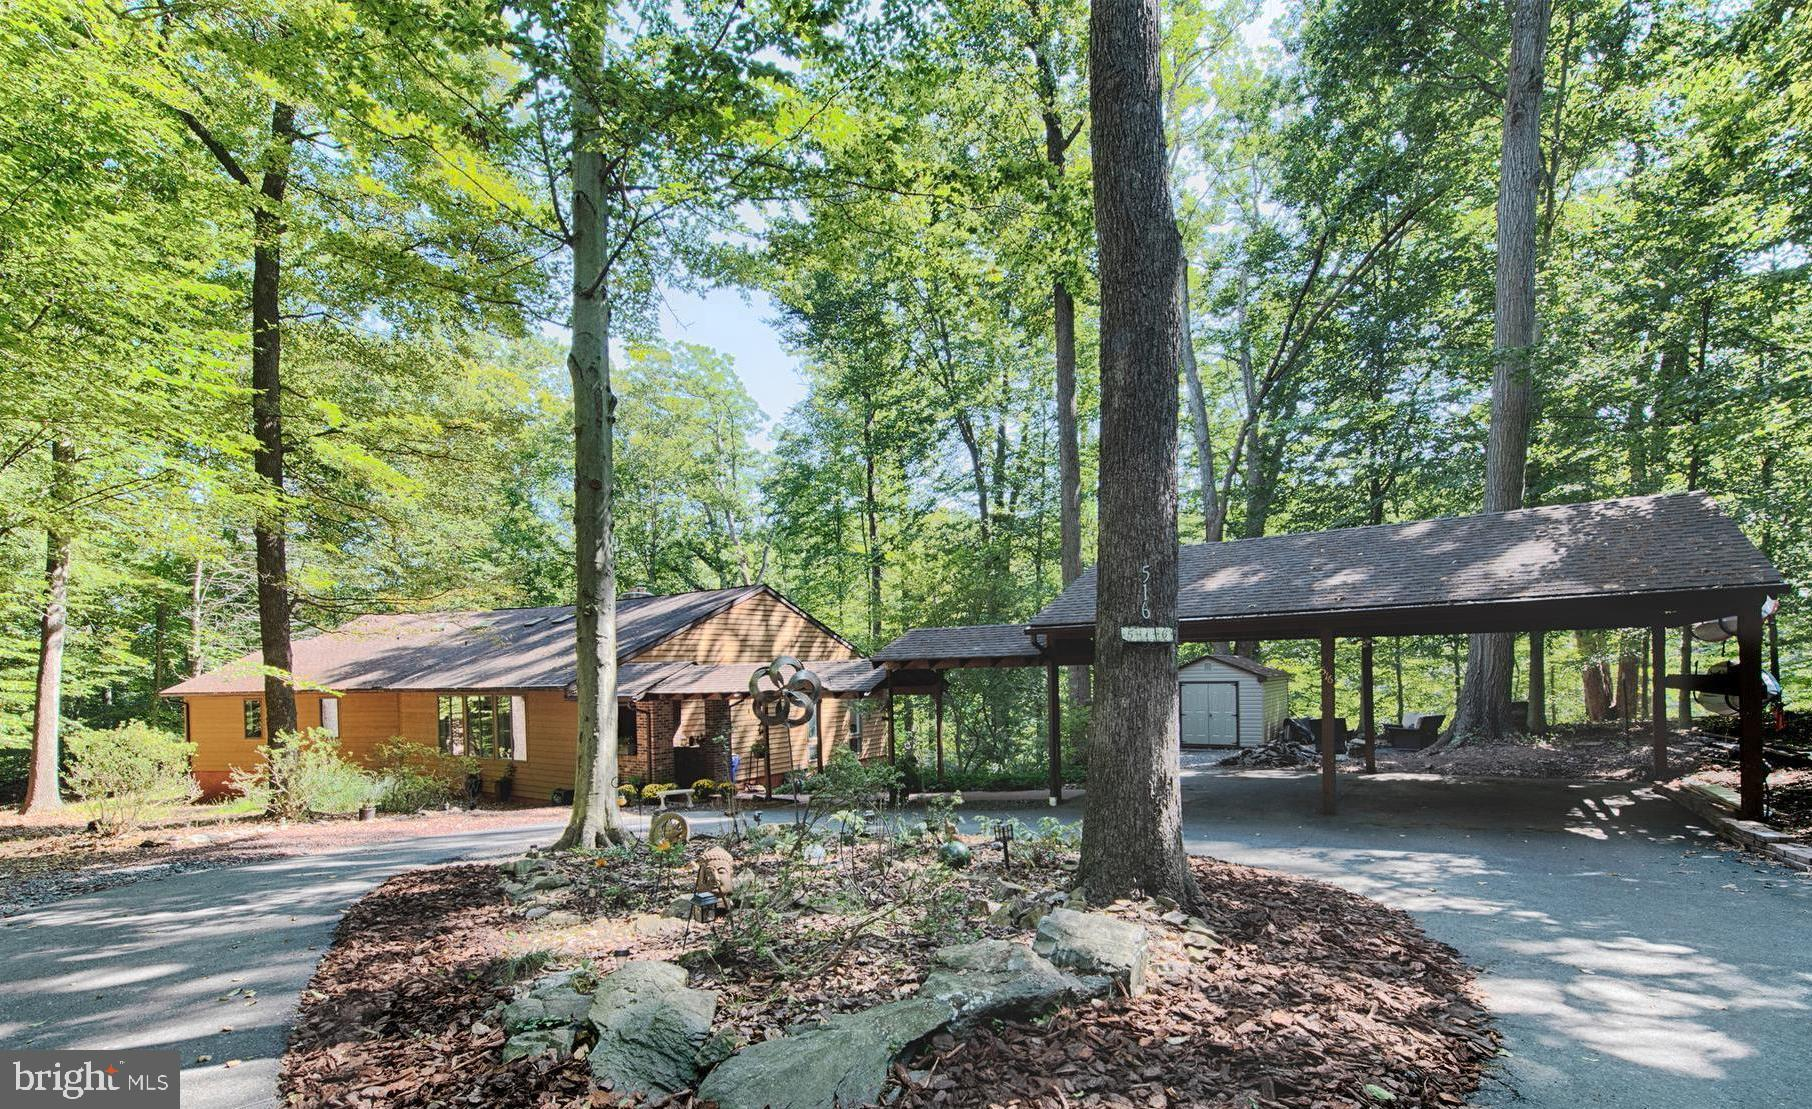 Gorgeous contemporary home with Cedar siding nestled in the woods on private lot sitting up high wit